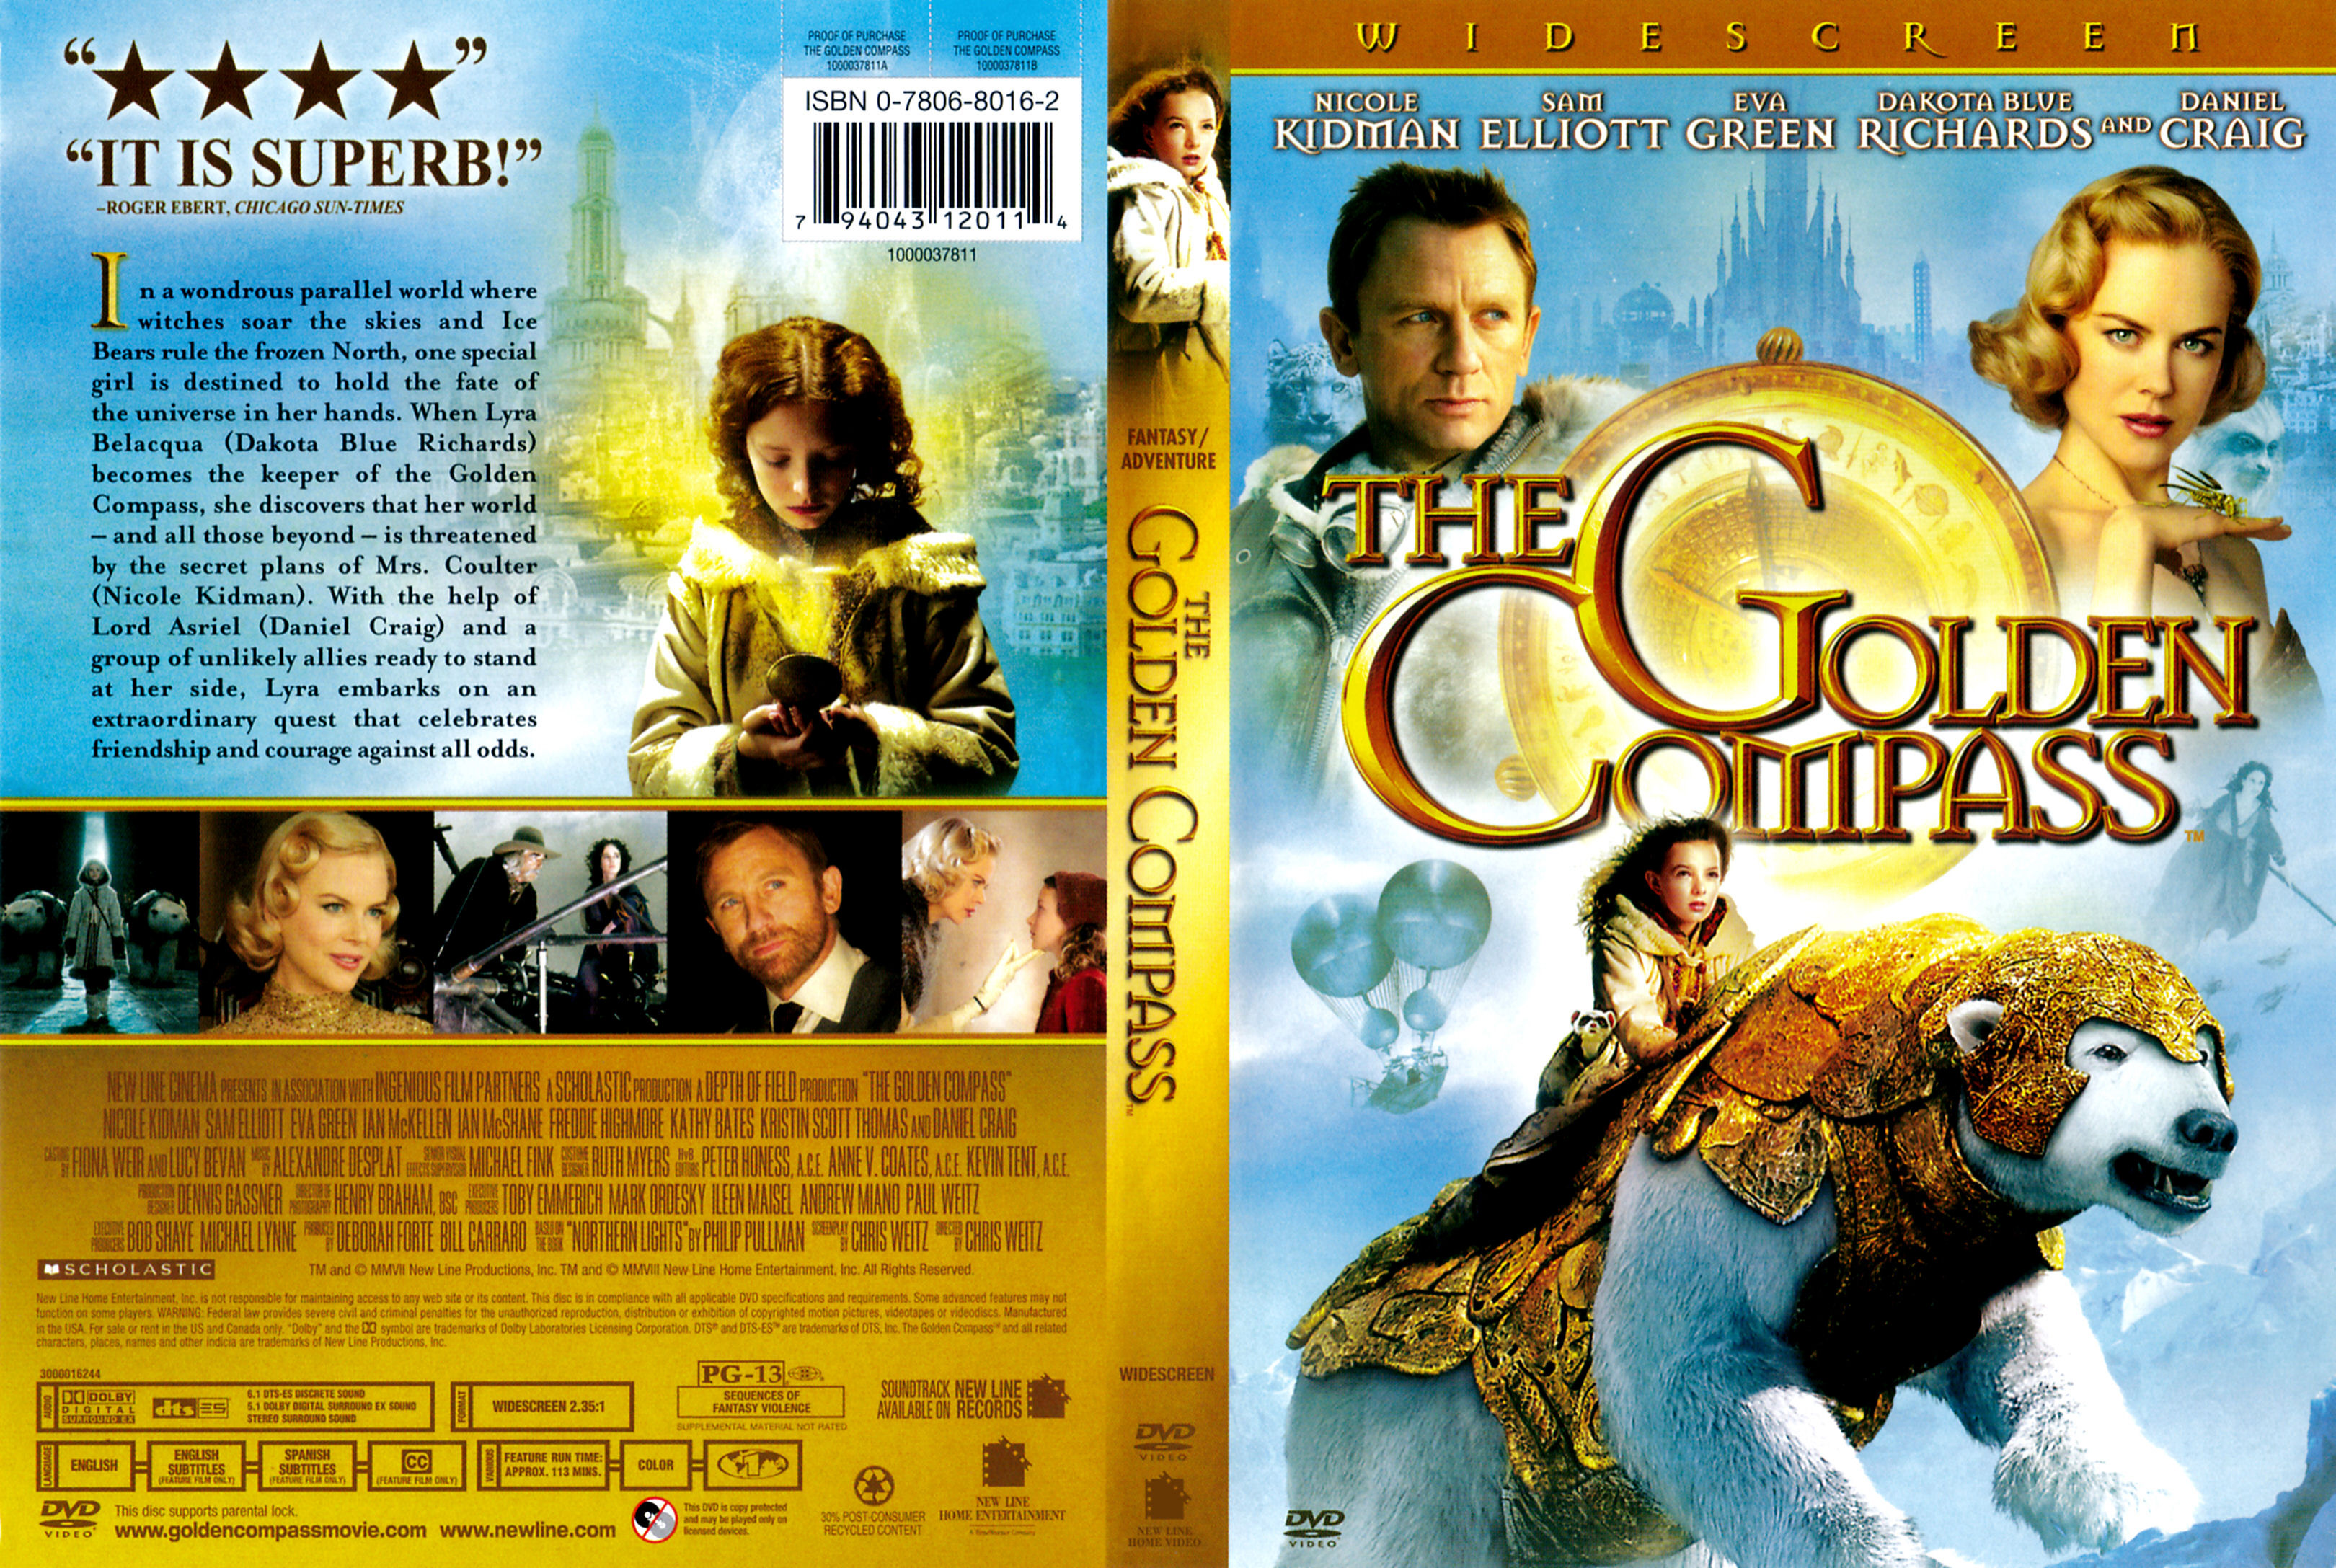 the protagonists quest for love fulfillment and a father figure in the golden compass a fantasy nove The two protagonists are reunited when deniro returns to familiarize her newborn son with the father he up a love affair and nick gets involved in an.